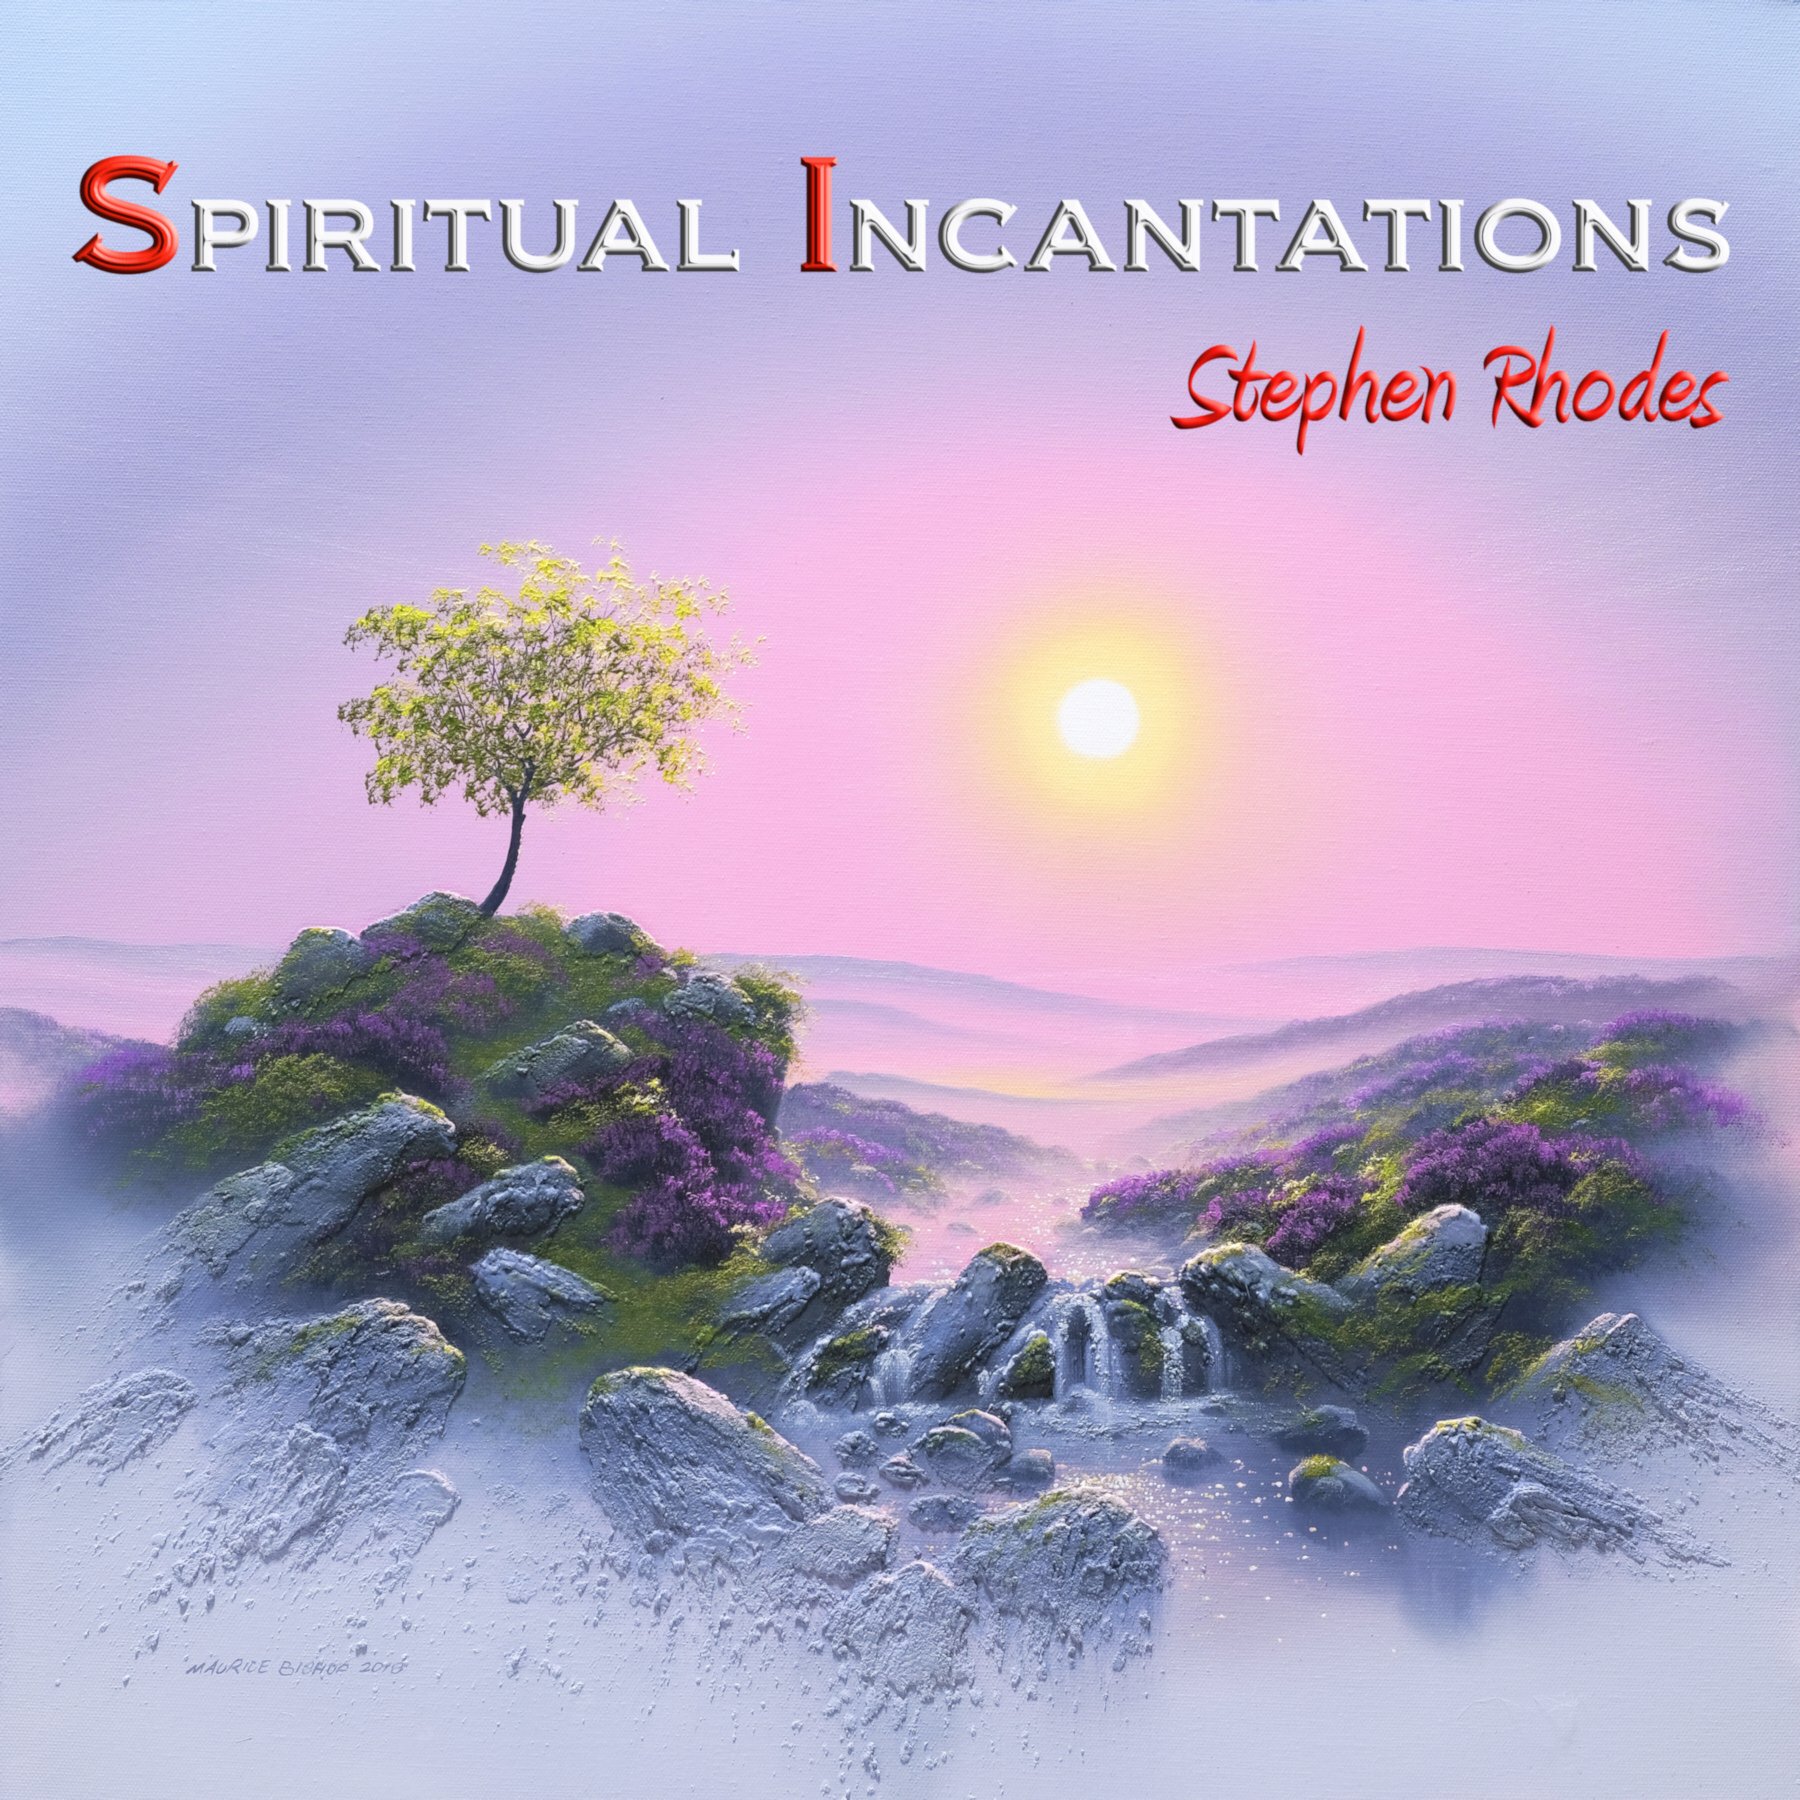 Spiritual Incantations by Stephen Rhodes